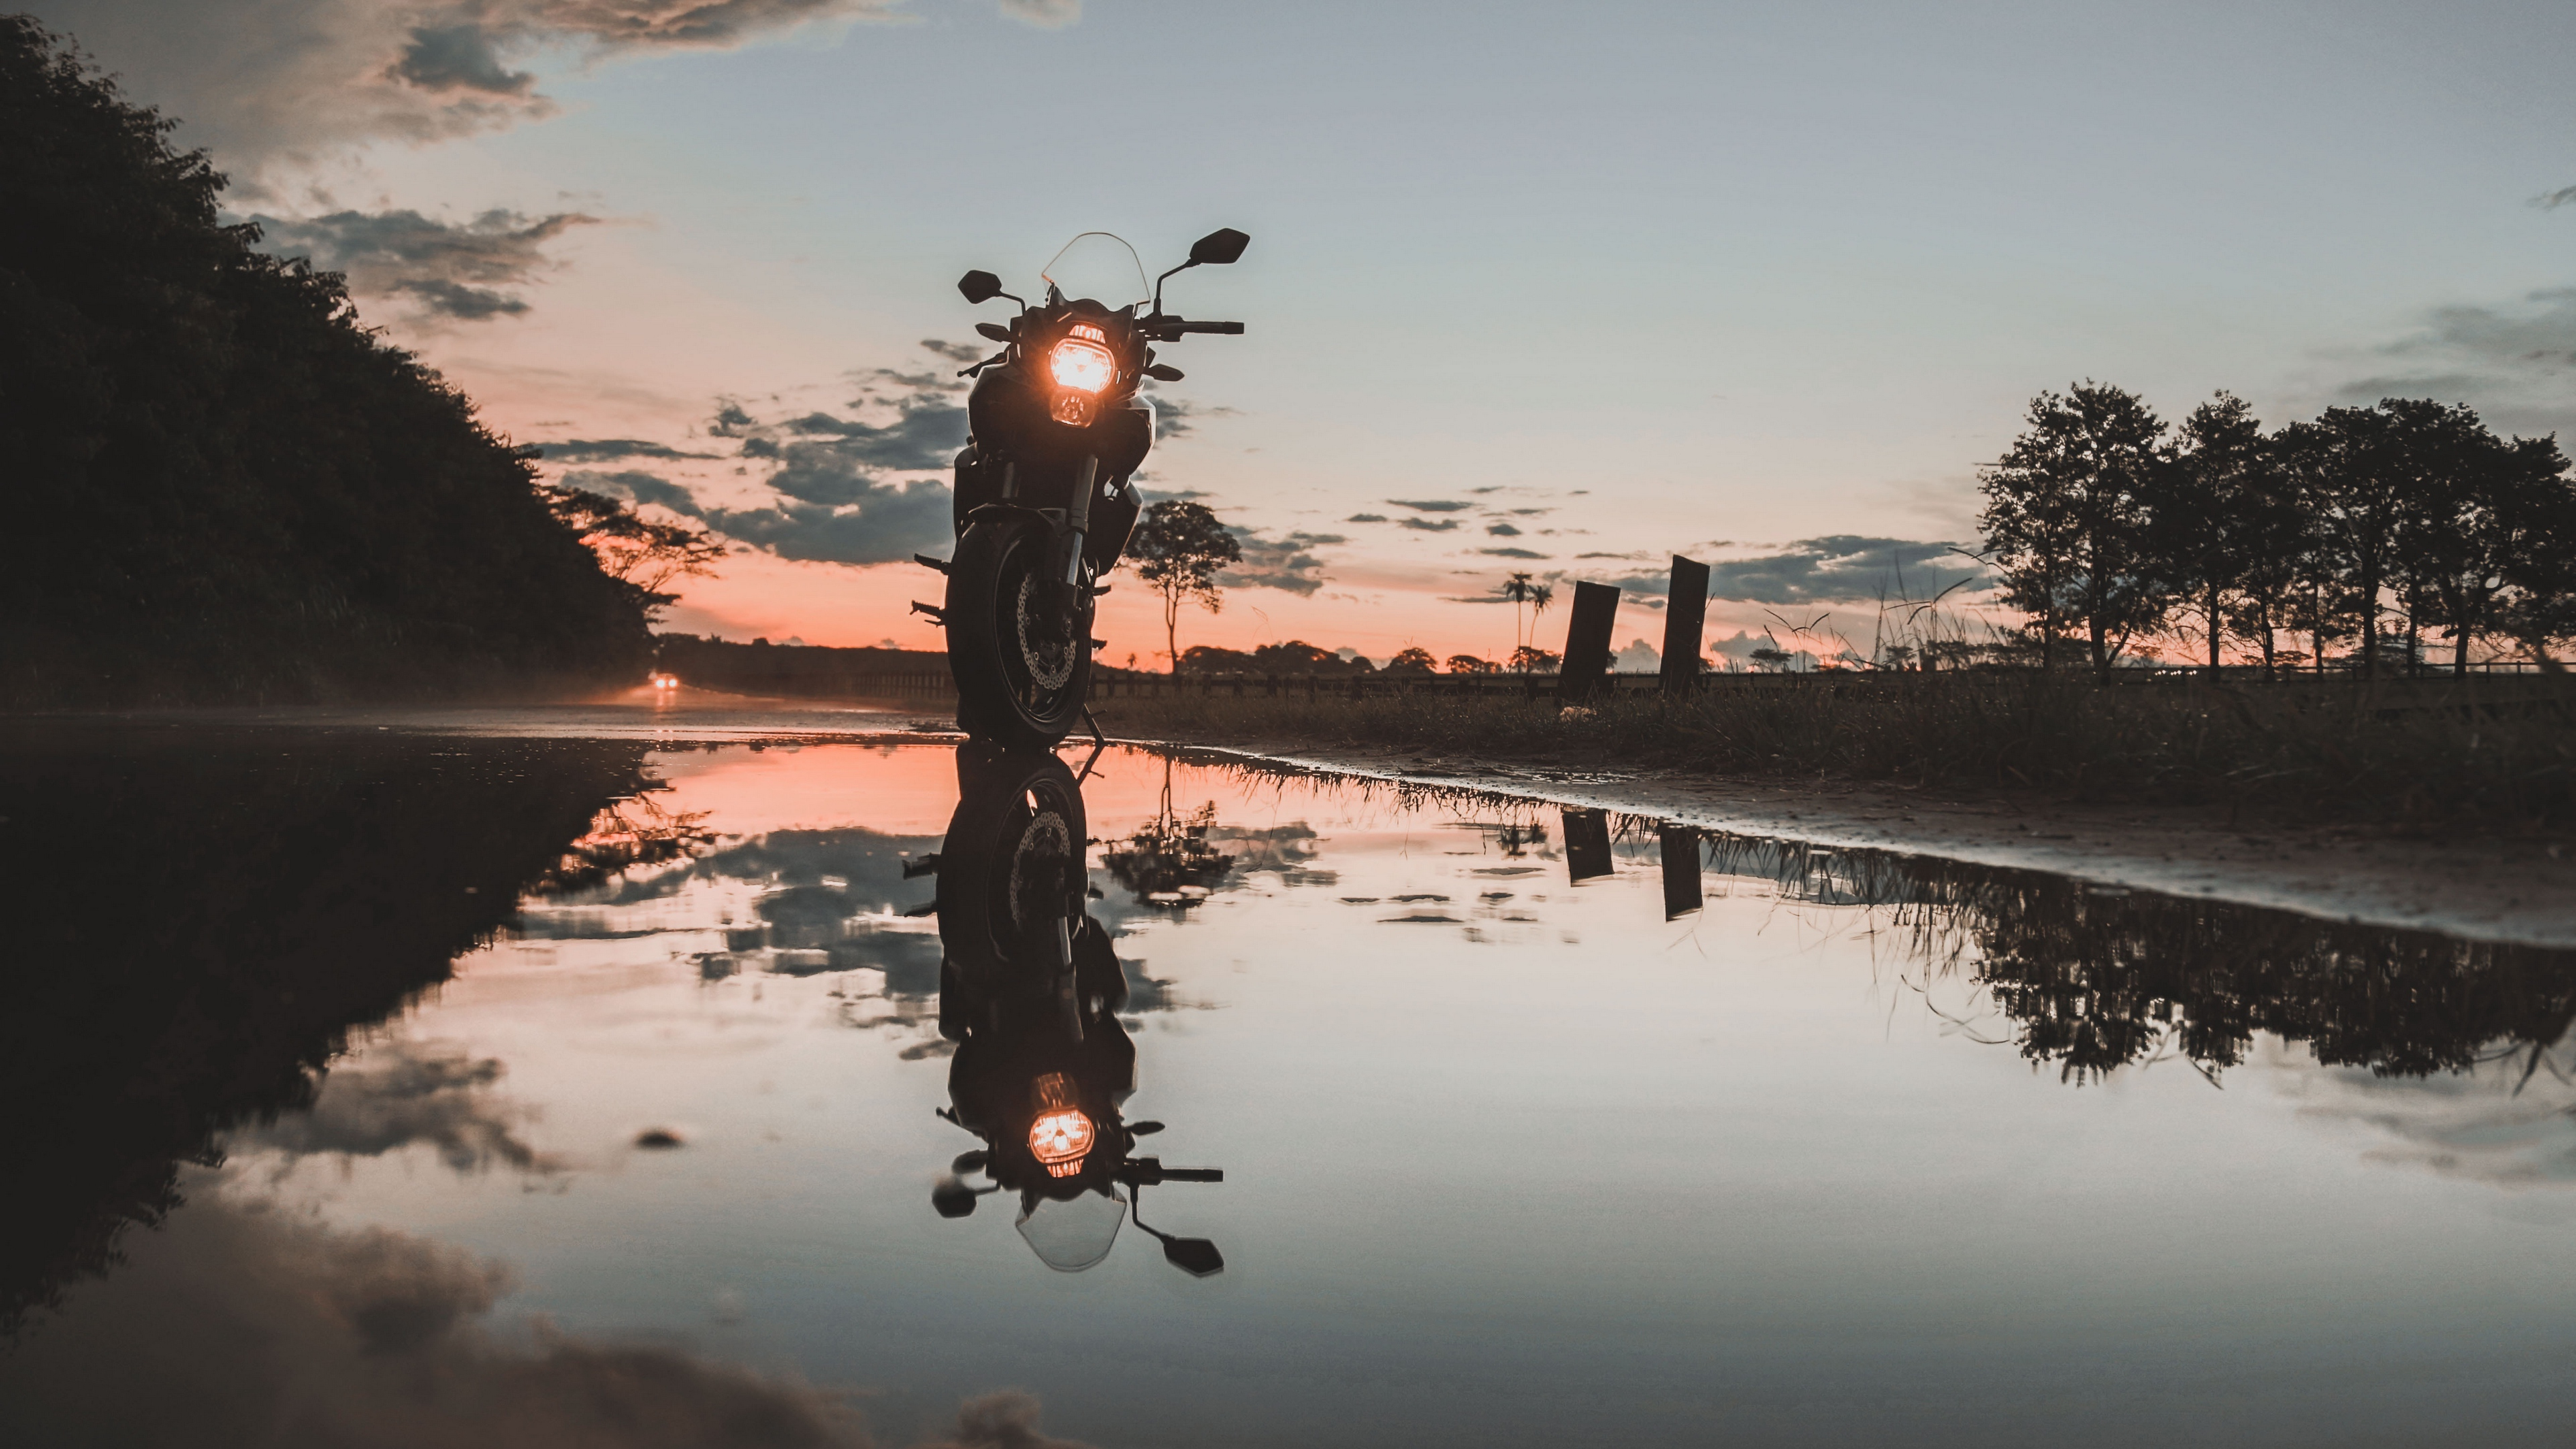 motorcycle sunset reflection water sky 4k 1536018782 - motorcycle, sunset, reflection, water, sky 4k - sunset, reflection, Motorcycle